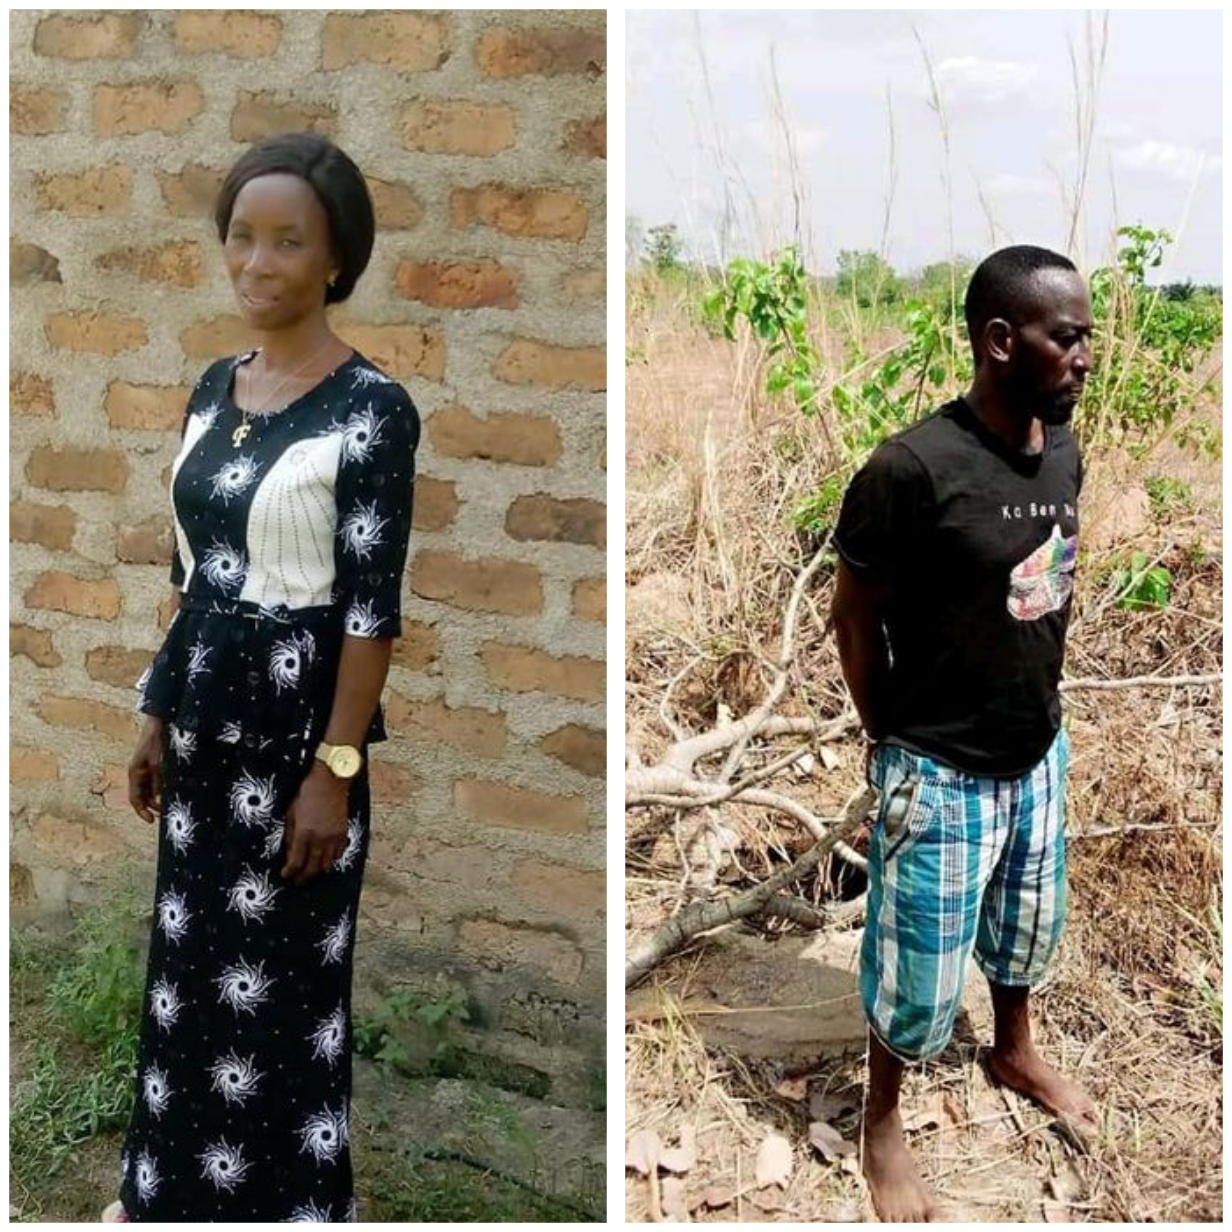 Man allegedly robs and kills married woman in Benue after rape attempt, dumps body in well